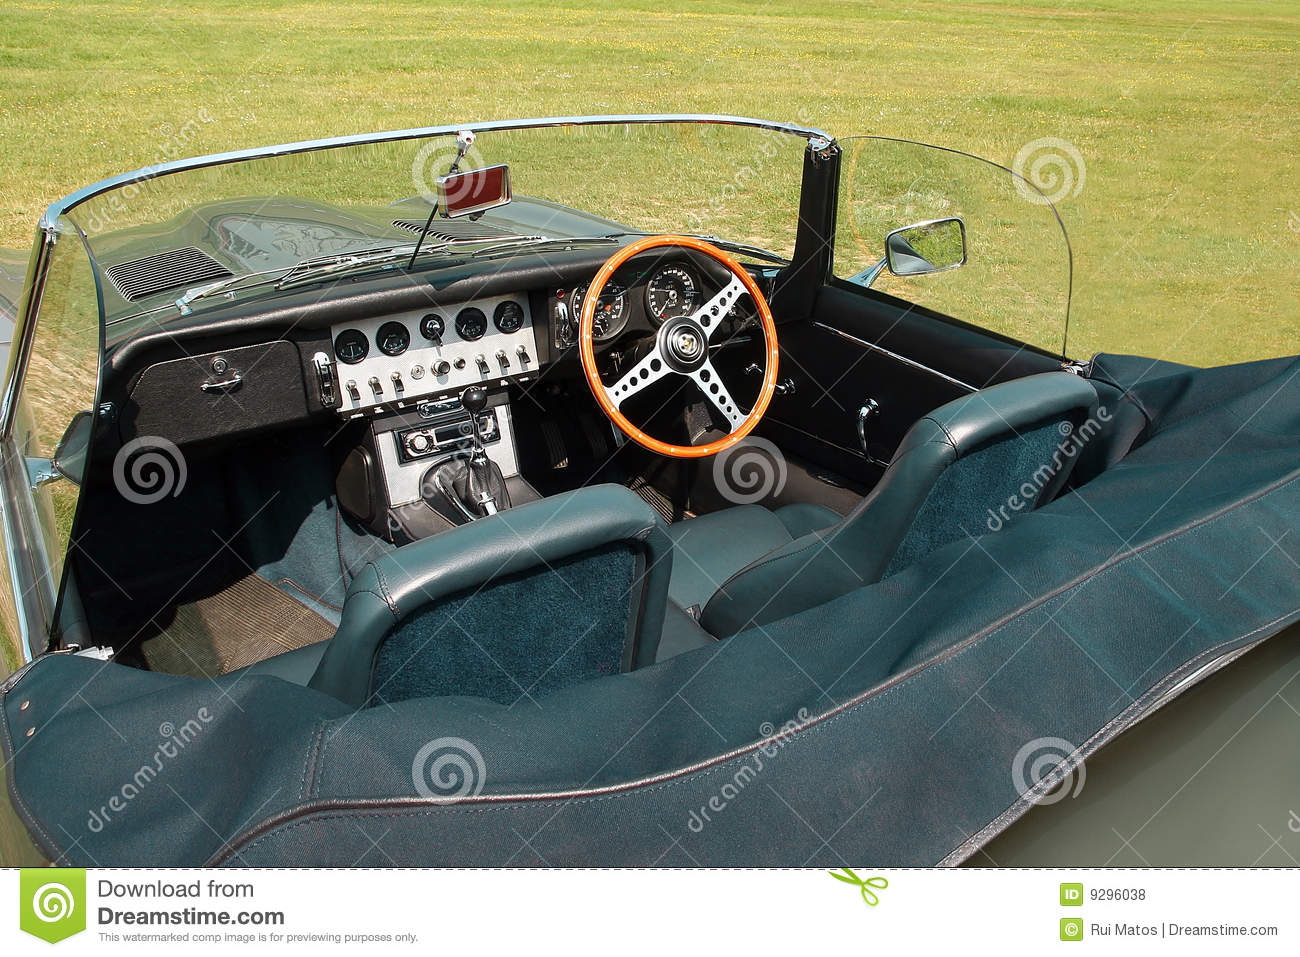 vintage convertible sports car interior closeup royalty free stock photos image 9296038. Black Bedroom Furniture Sets. Home Design Ideas